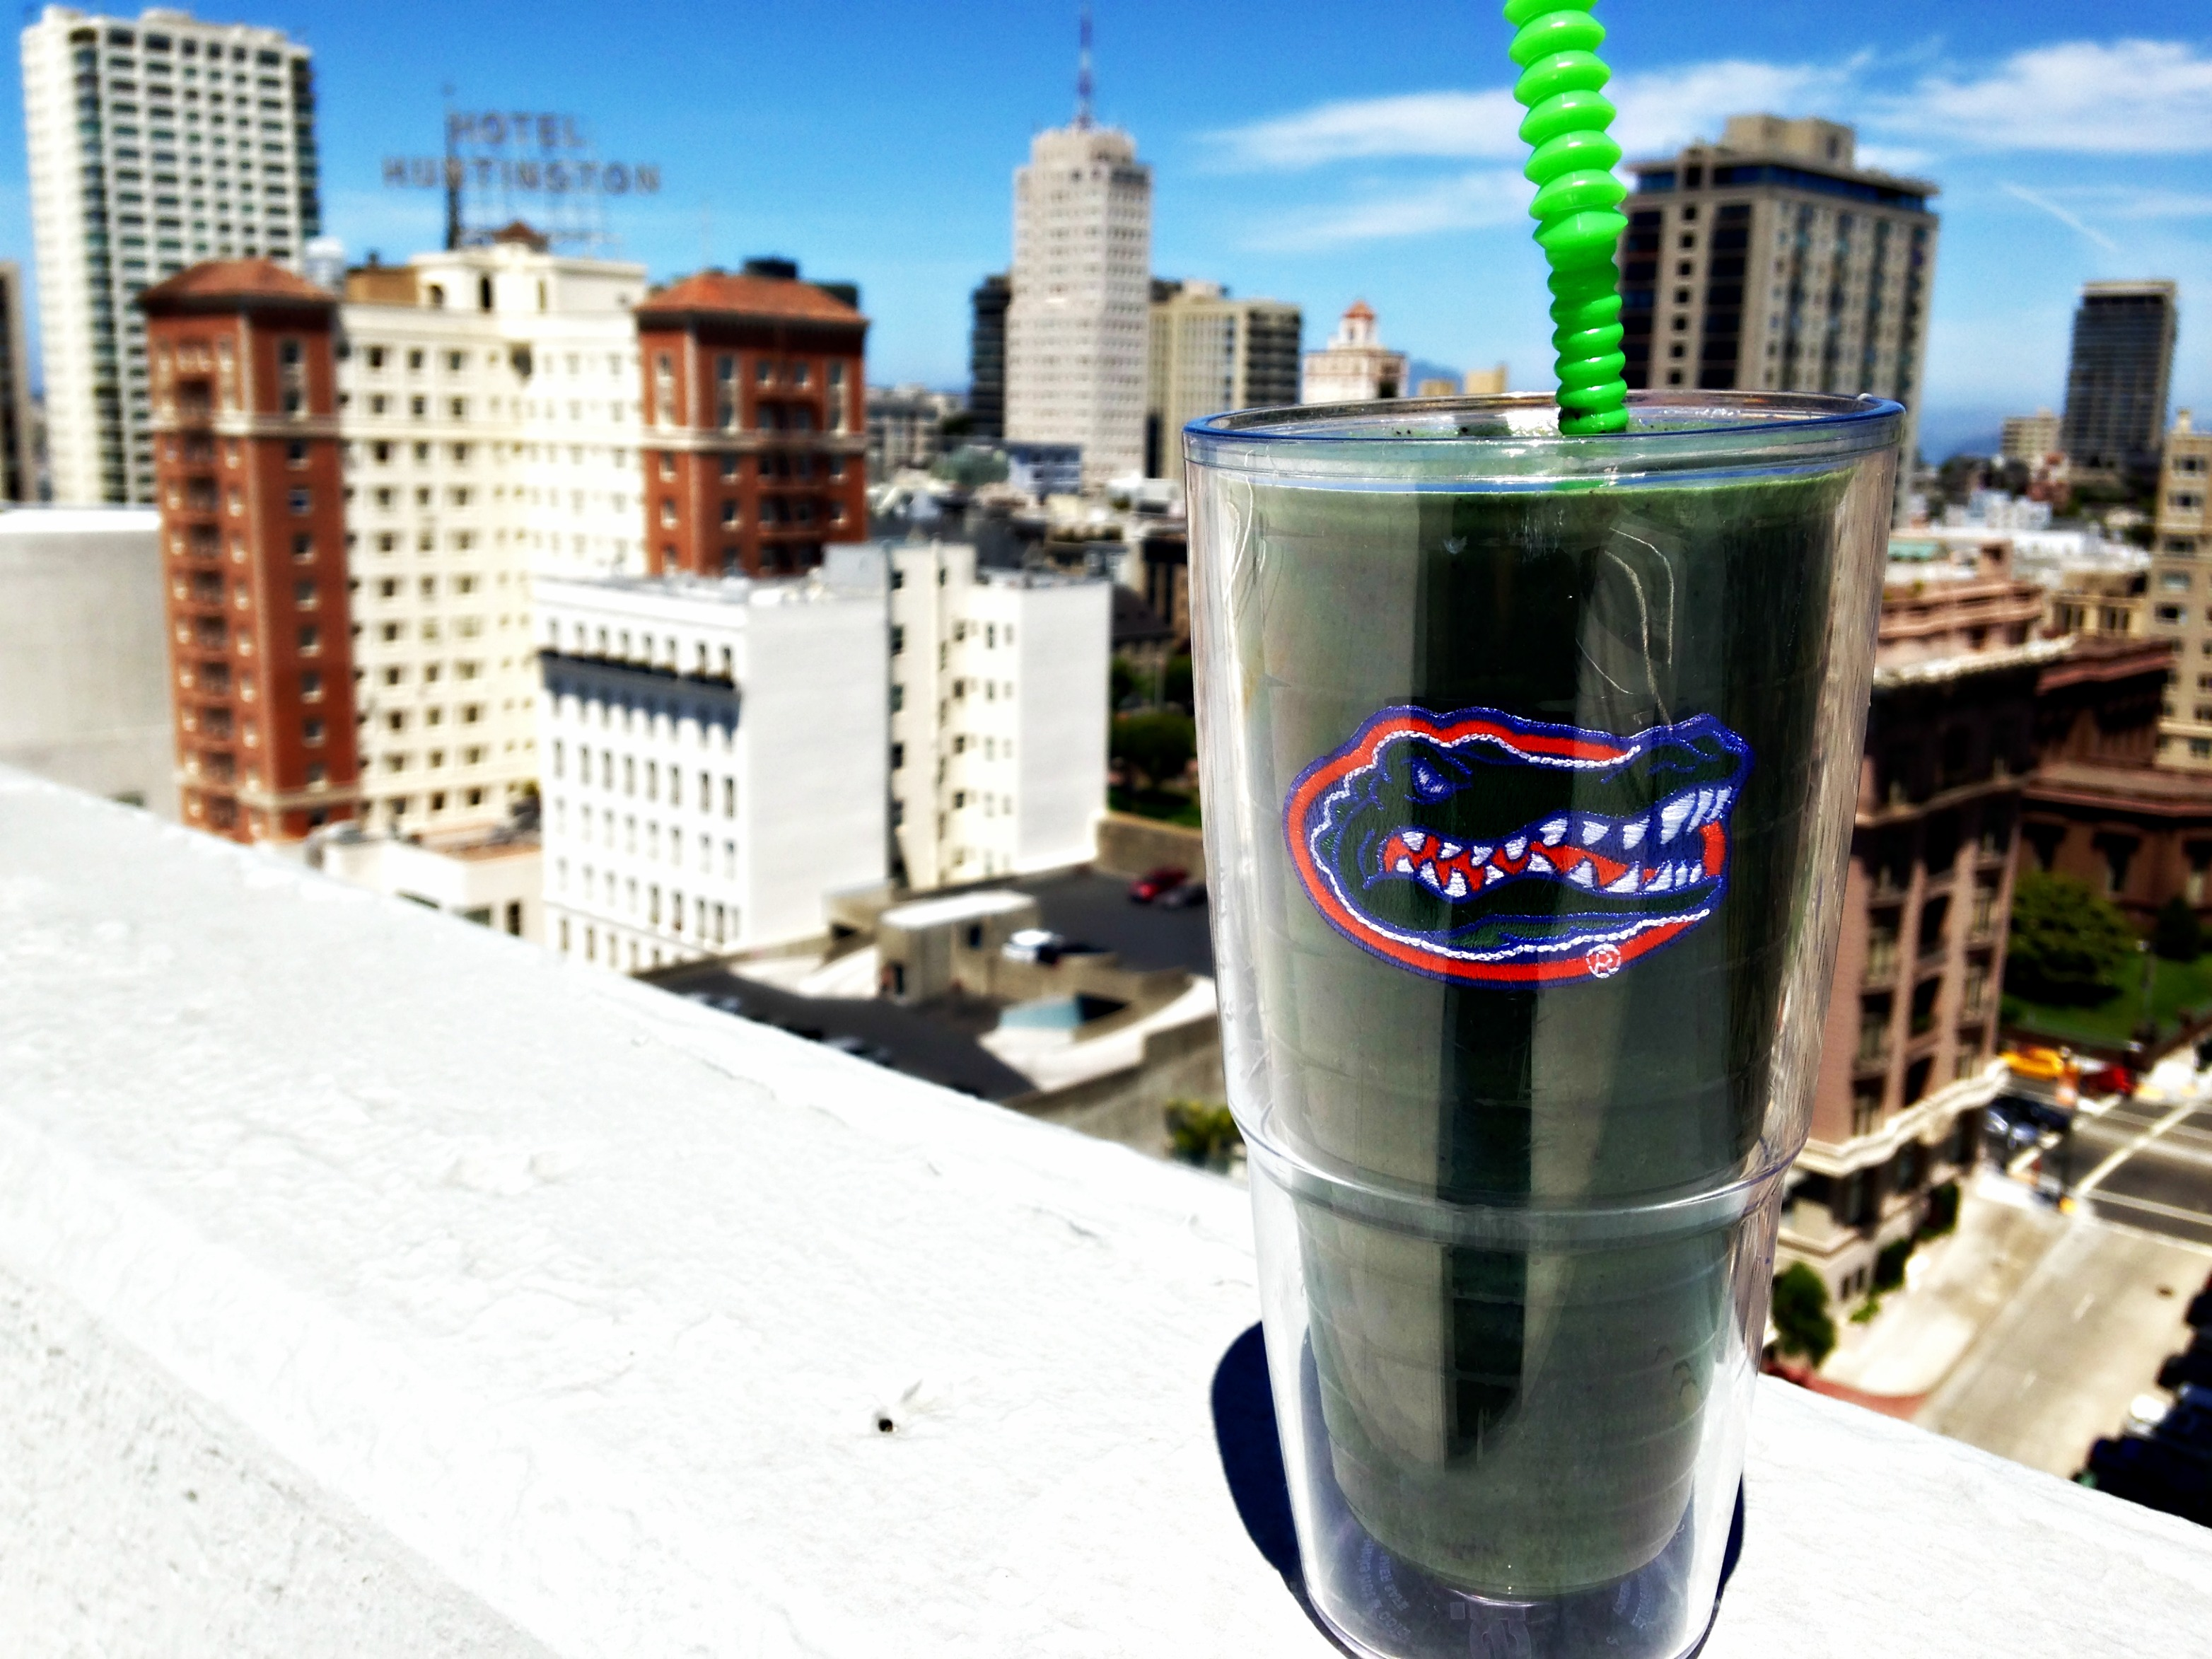 Green smoothie on the roof